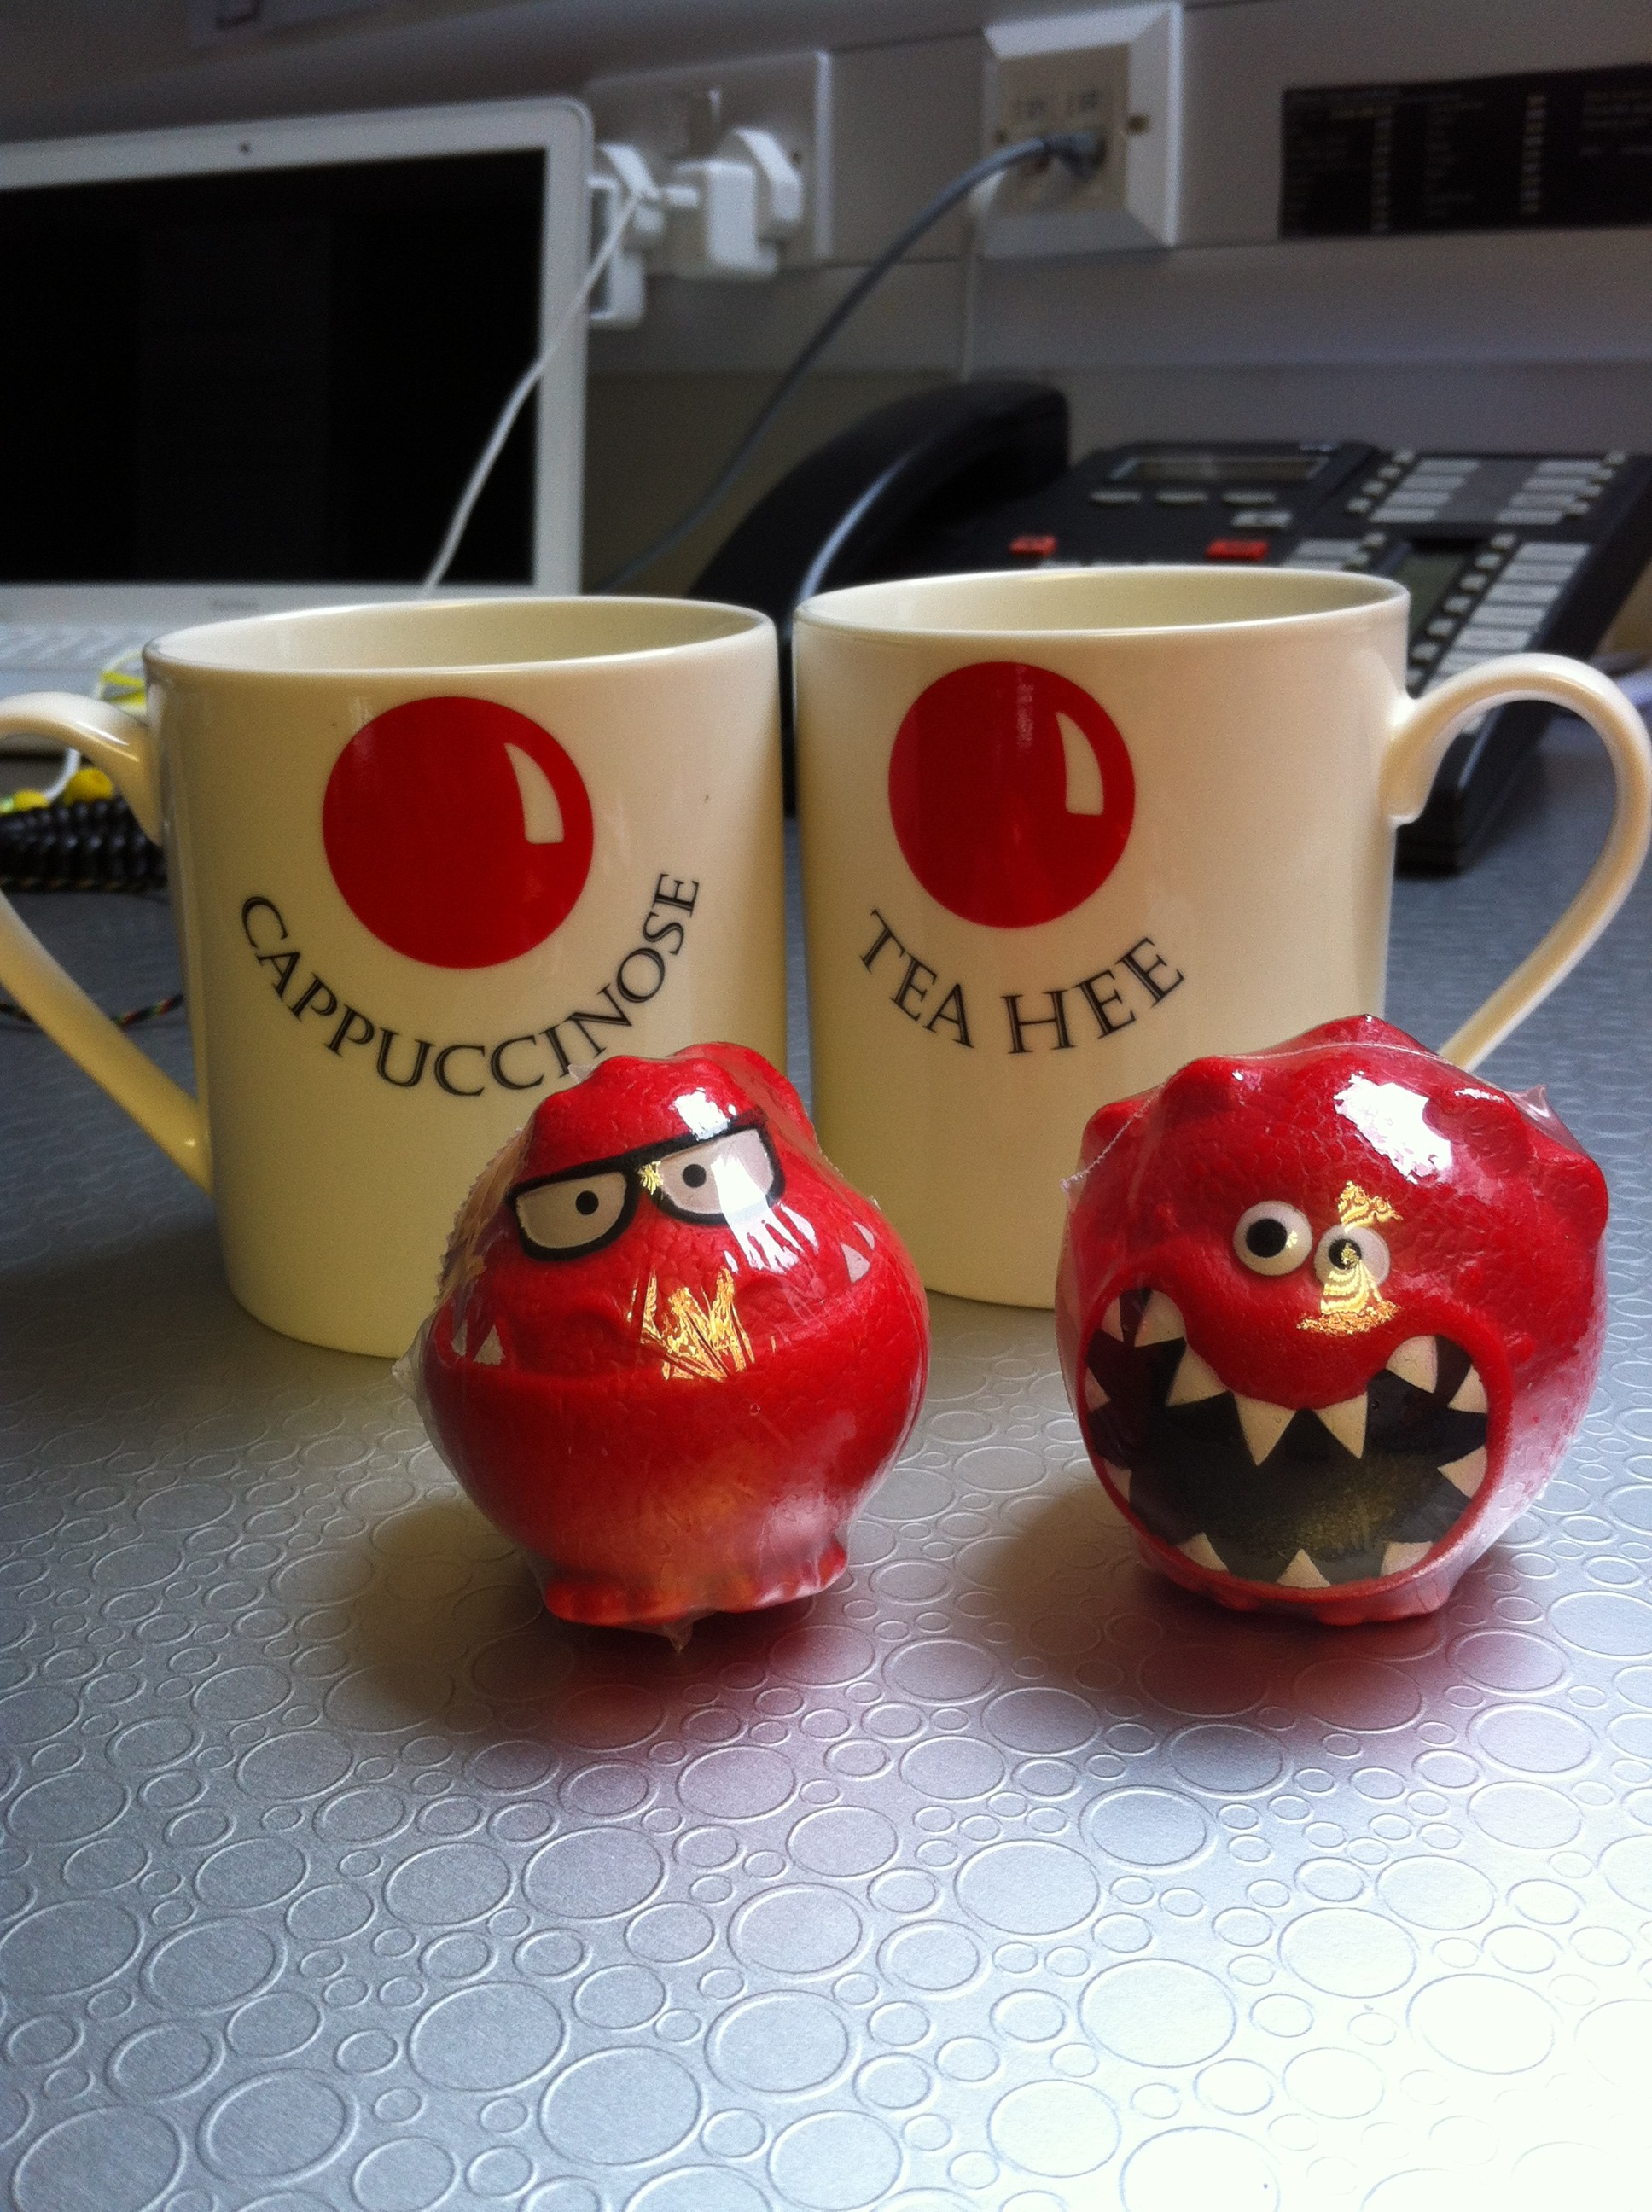 red noses and comic relief mugs